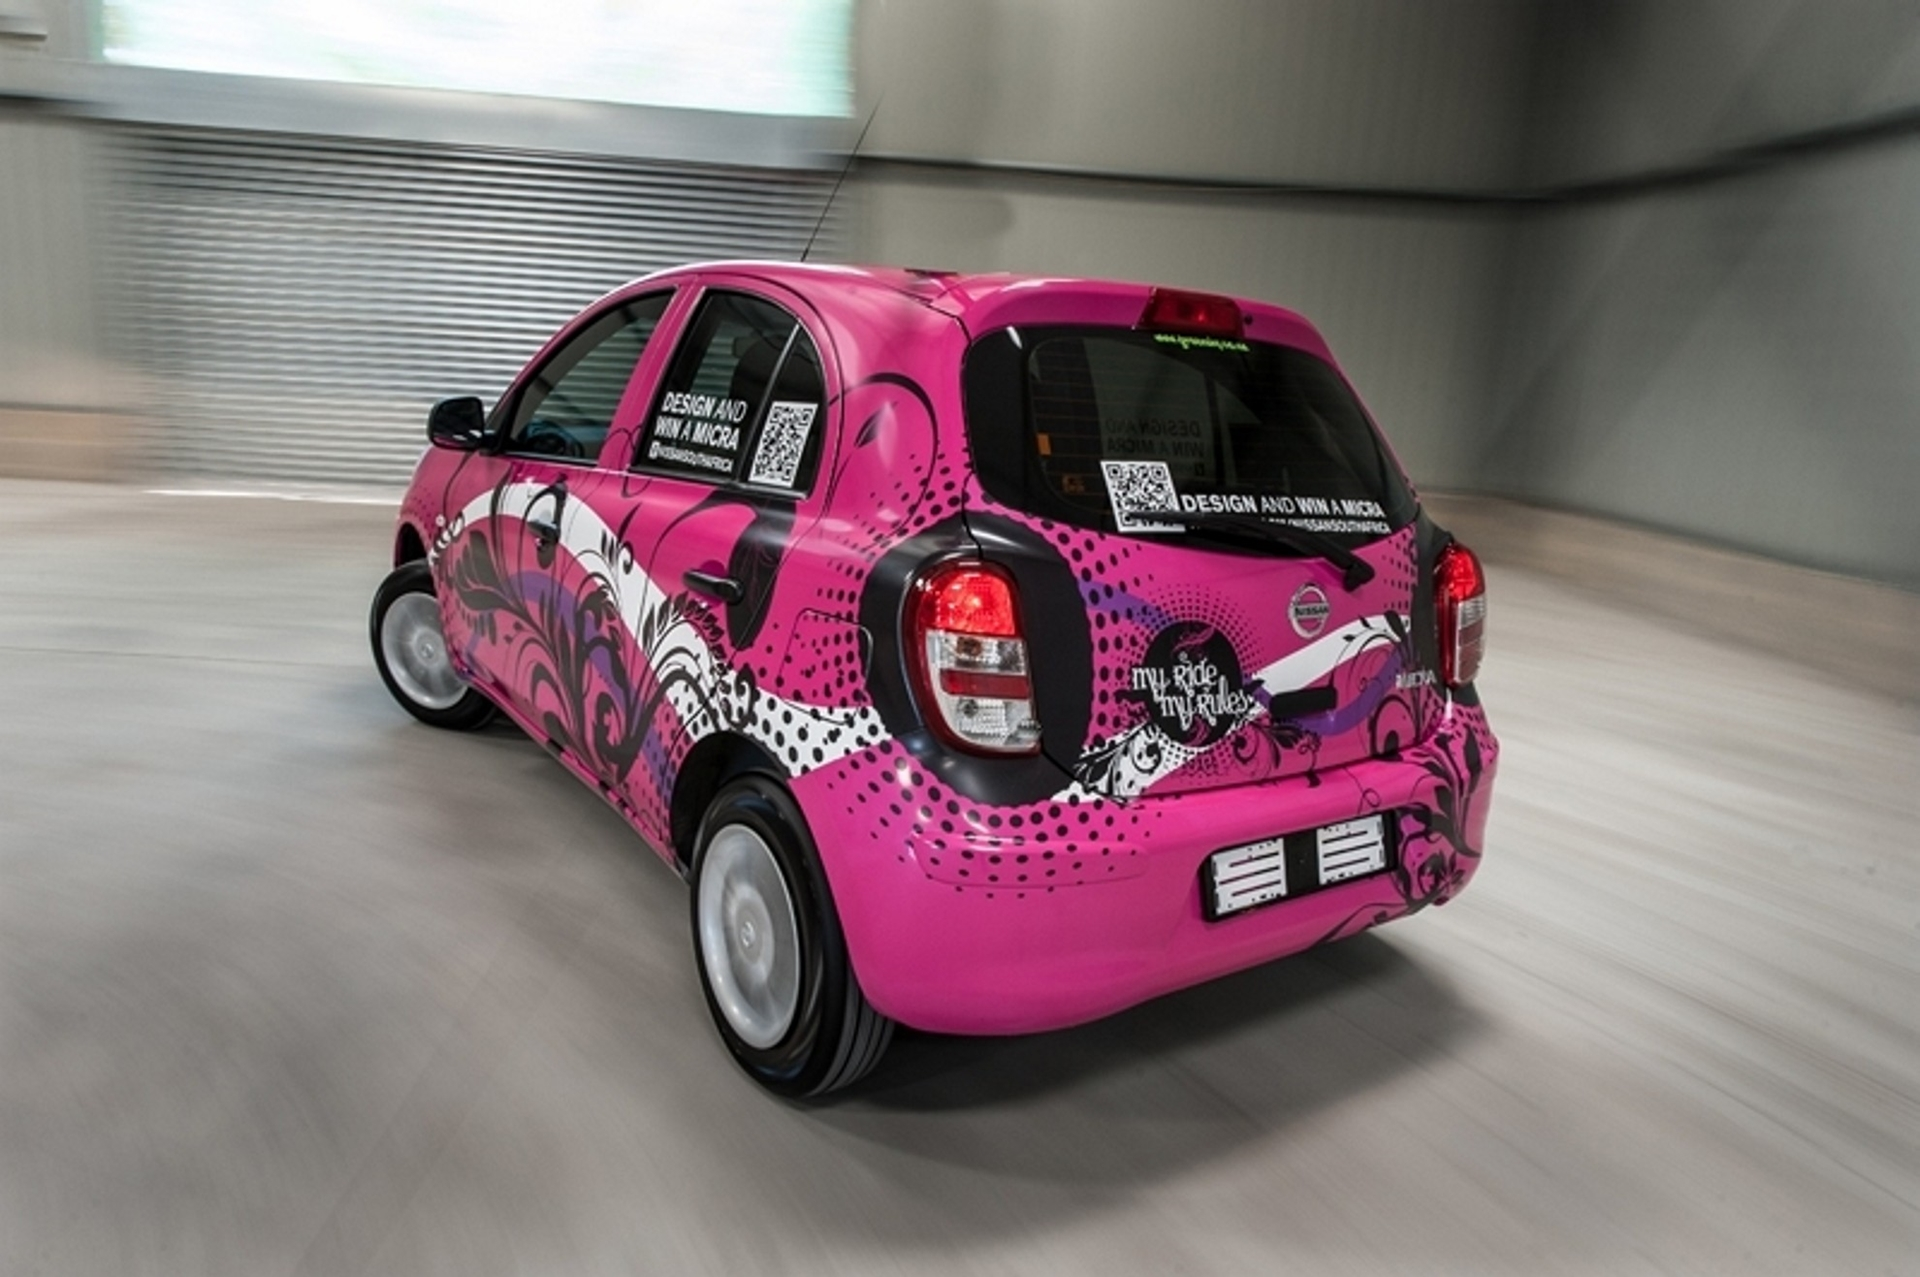 NISSAN MICRA - My Car, My Ride, My Rules